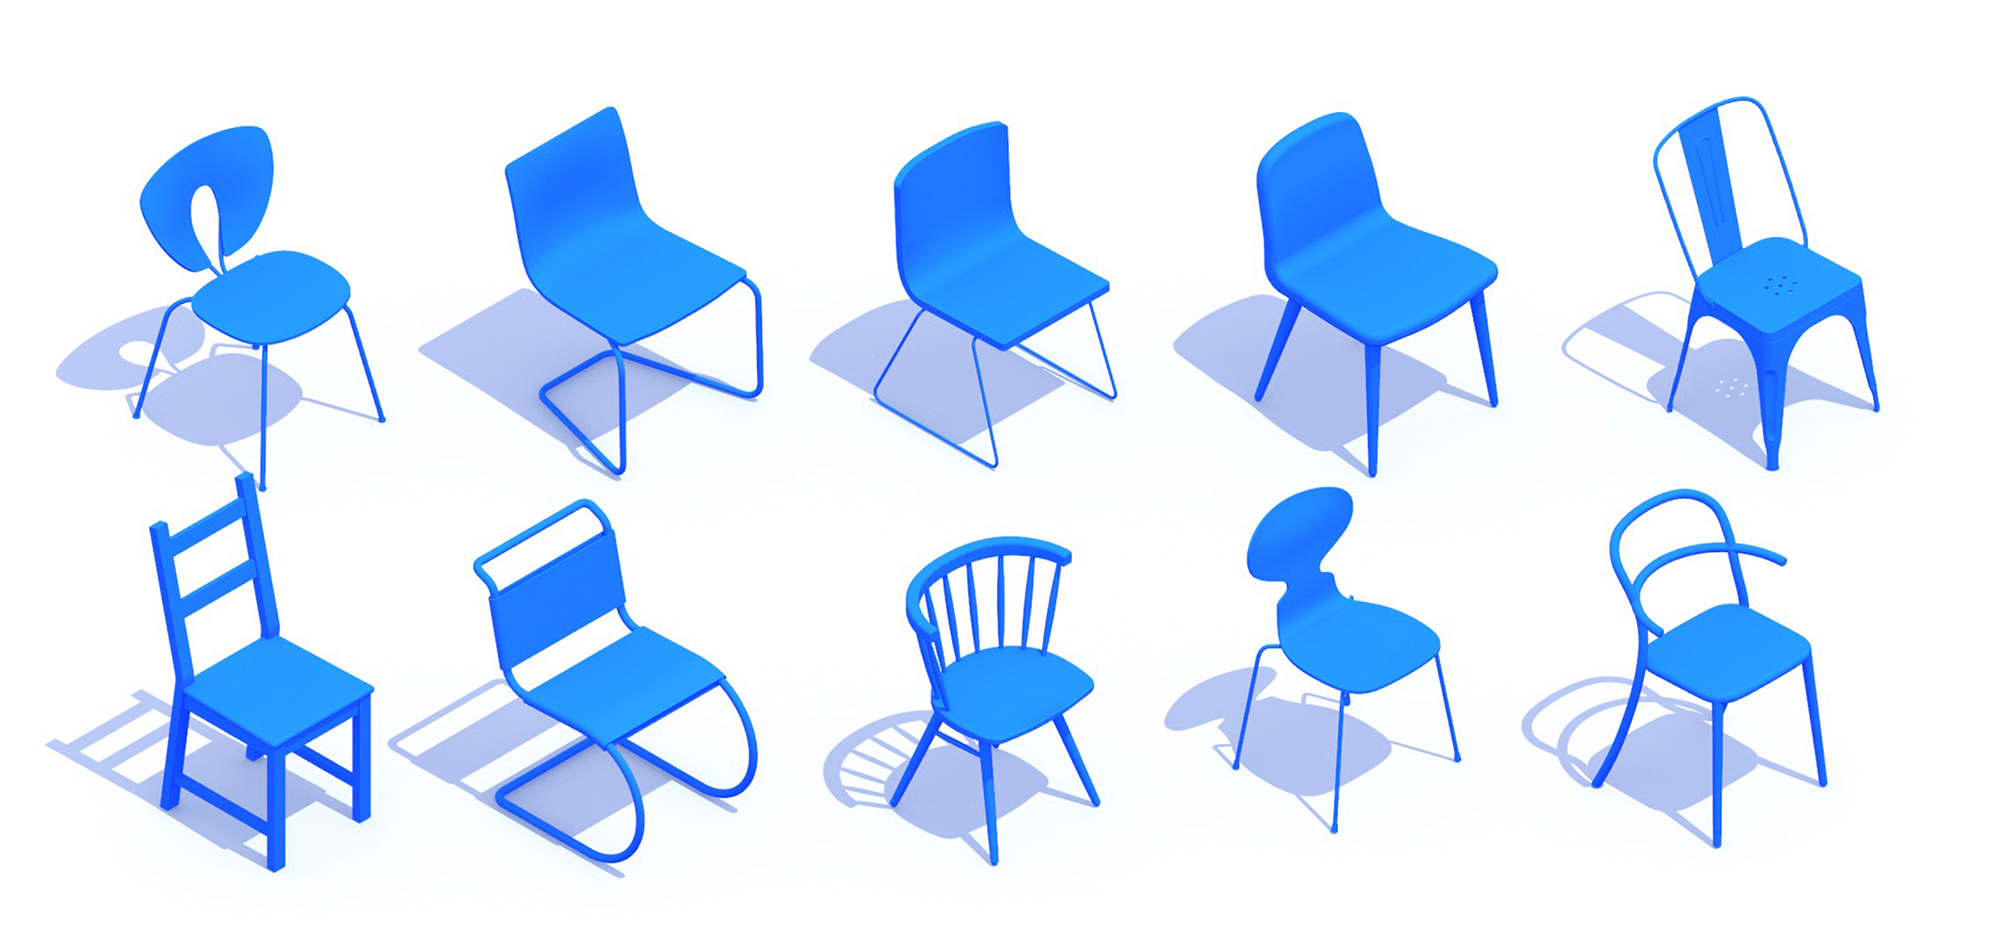 3D perspective of a collection of Side Chairs (Dining Chairs) showing many different sizes, styles, and designs